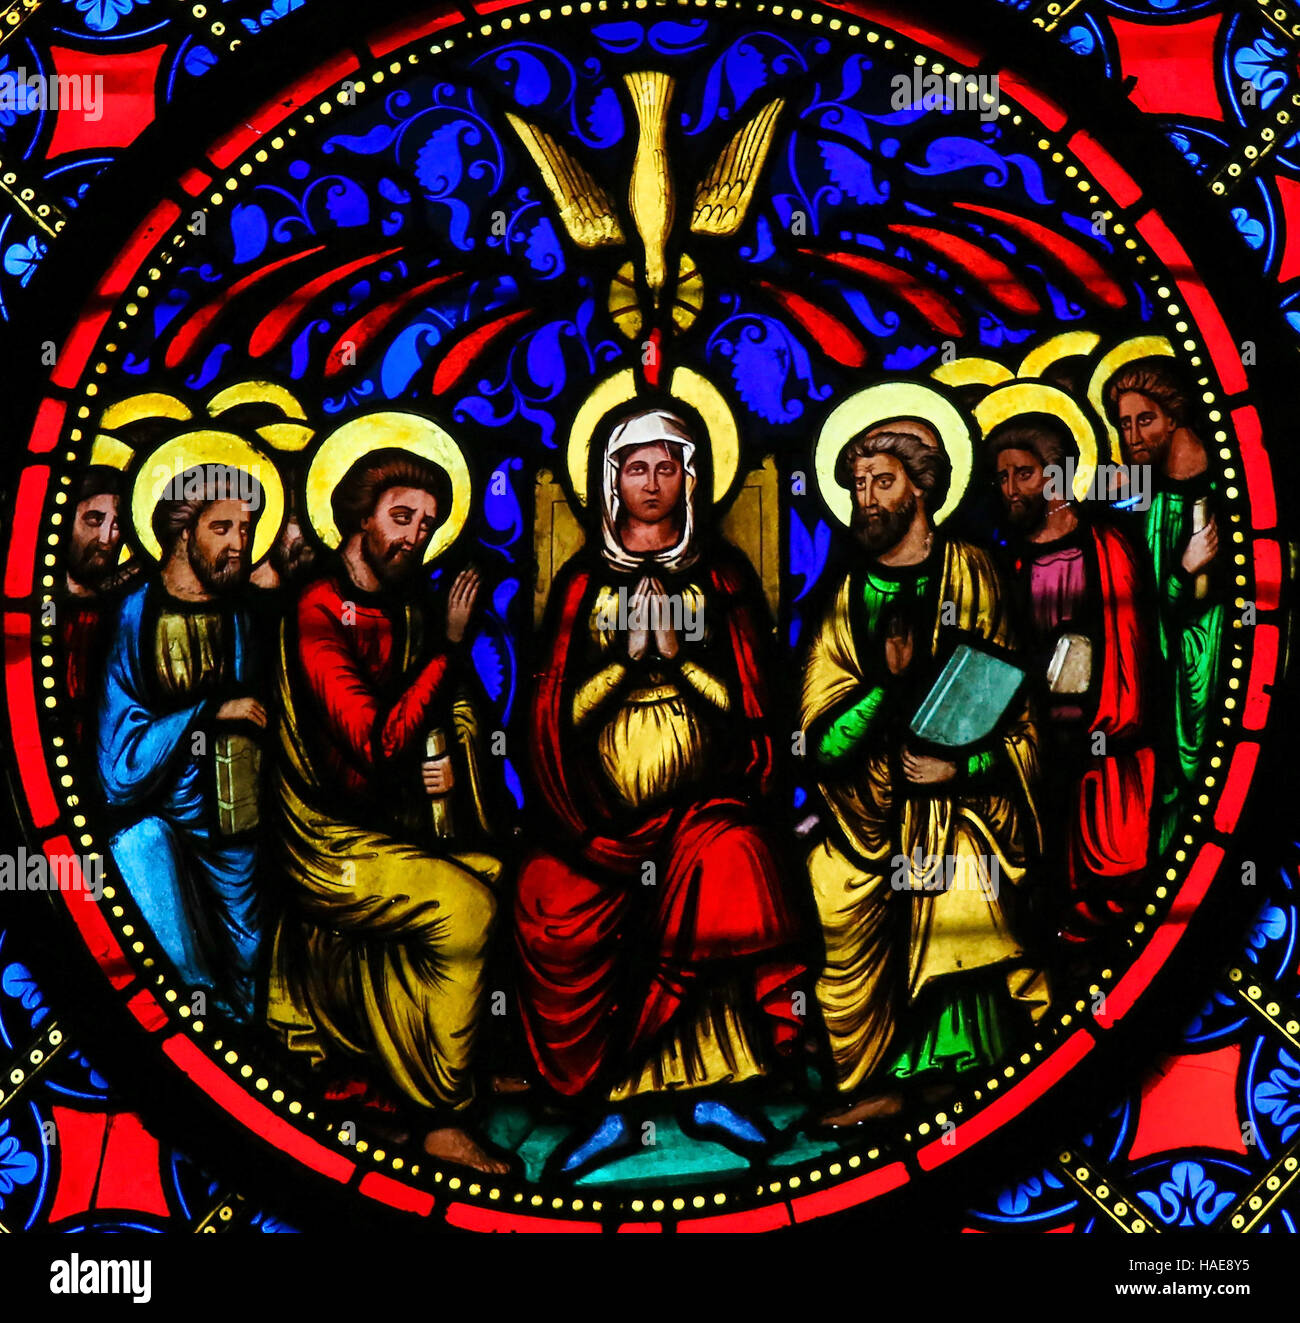 Stained Glass window in the Cathedral of Bayeux, France, depicting Mother Mary and the Apostles at Pentecost - Stock Image